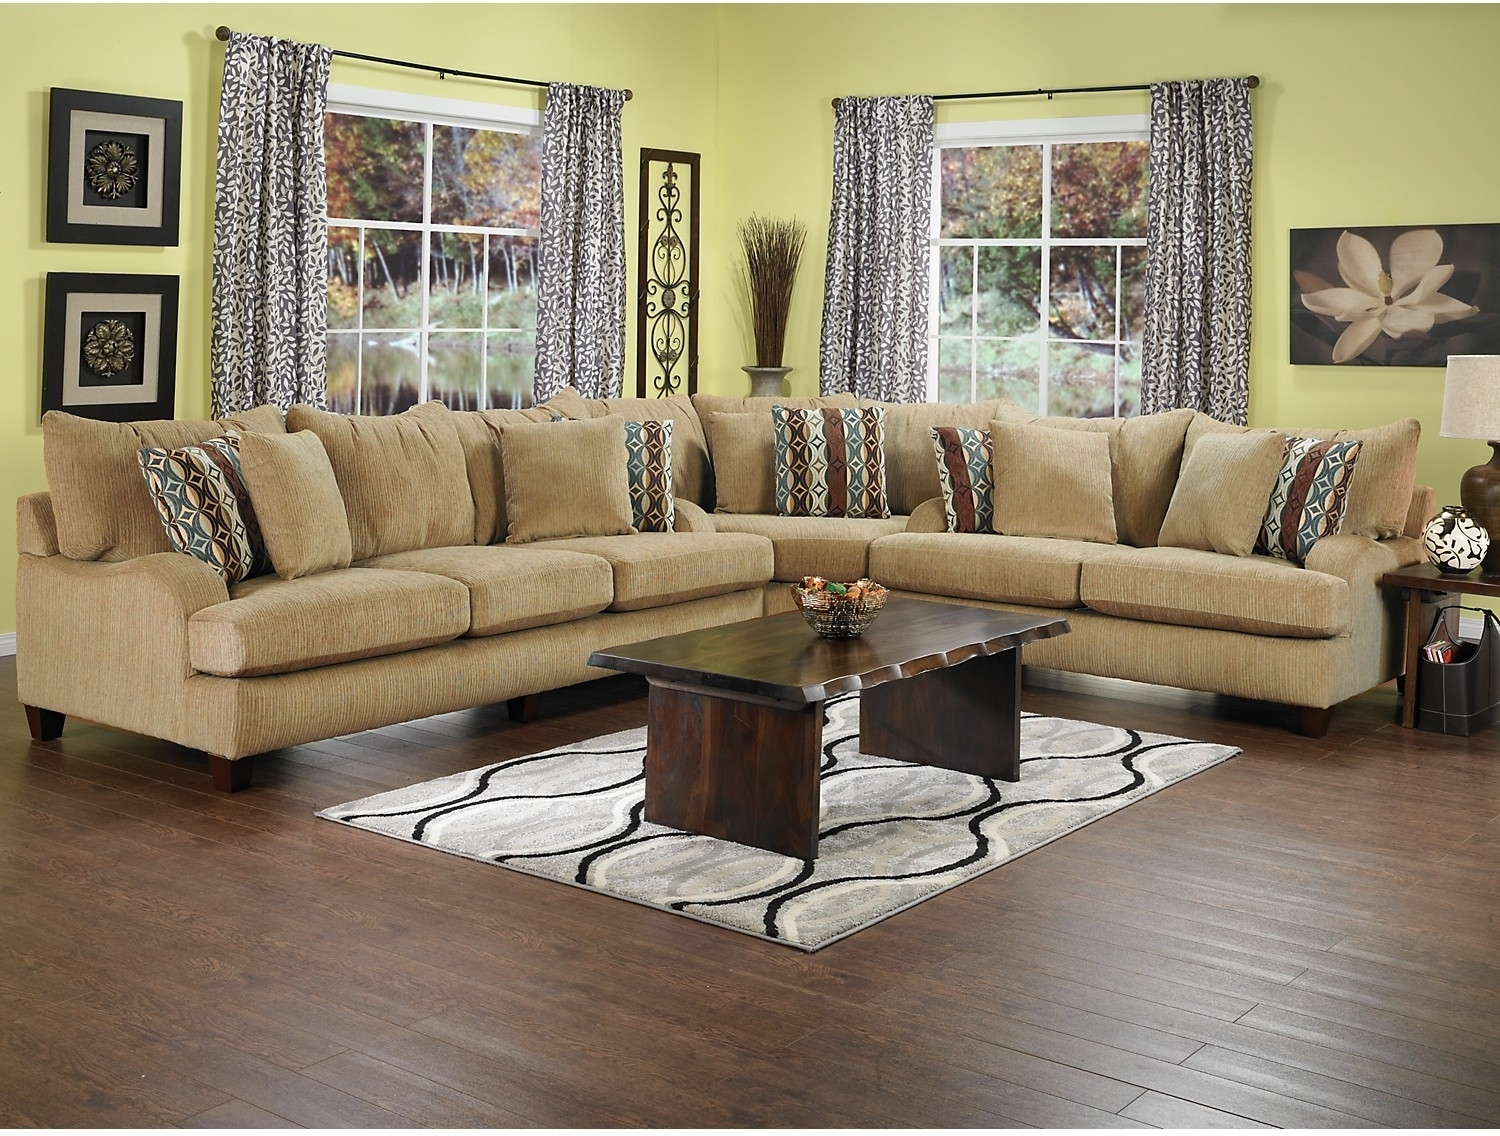 Inspiring The Brick Sectional Sofas 82 For Your Sectional Sofa with regard to The Brick Sectional Sofas (Image 6 of 10)